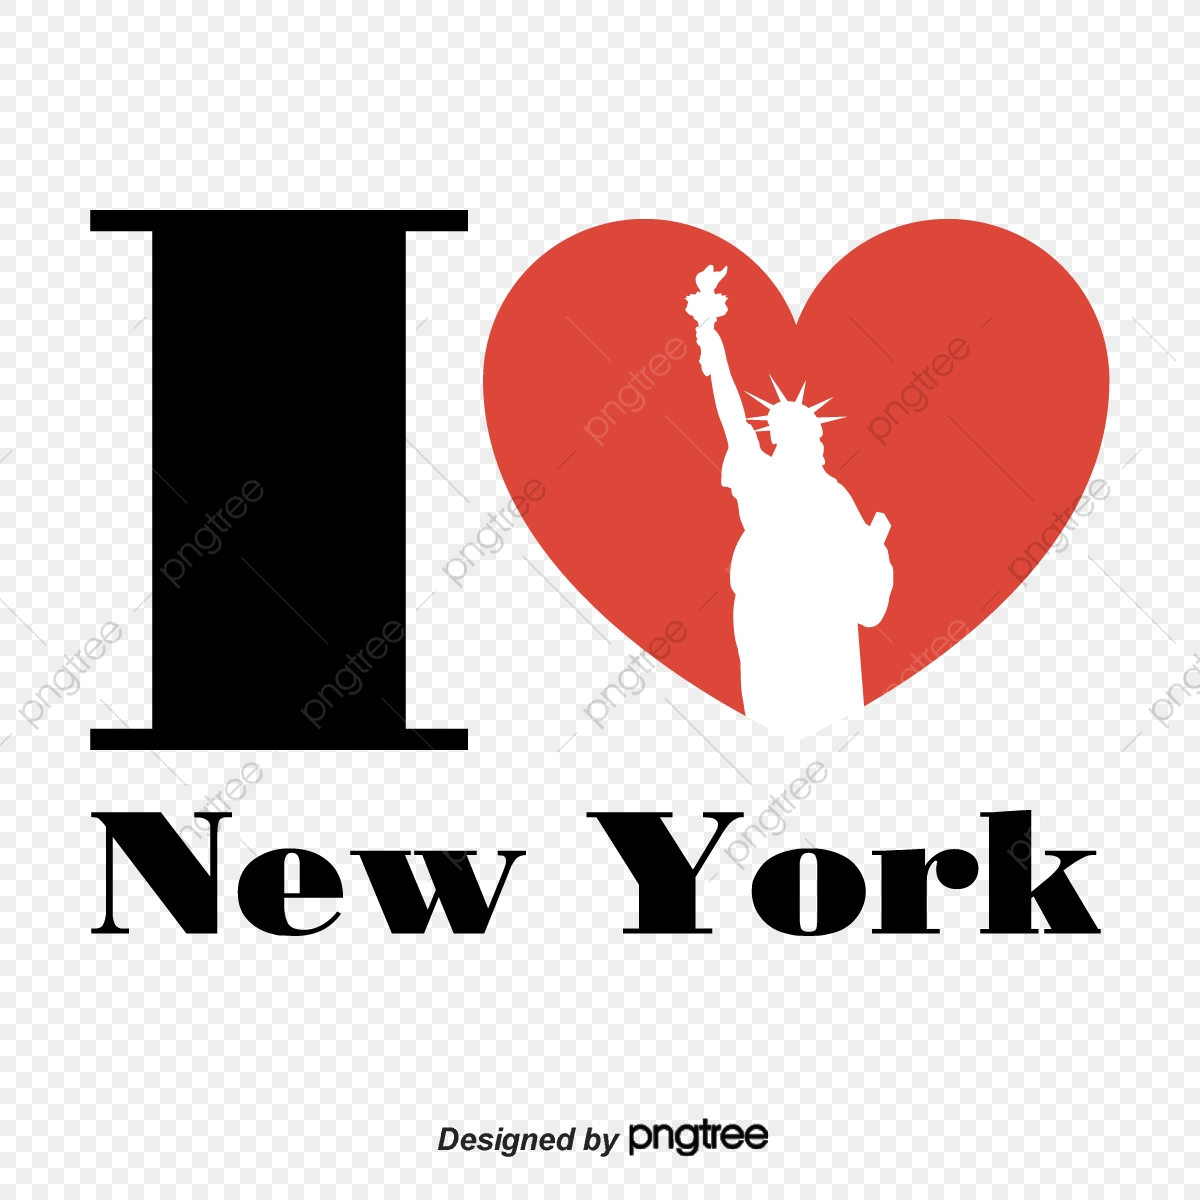 I Love Heart Shaped Creative Design In New York, Landmark, I Love.